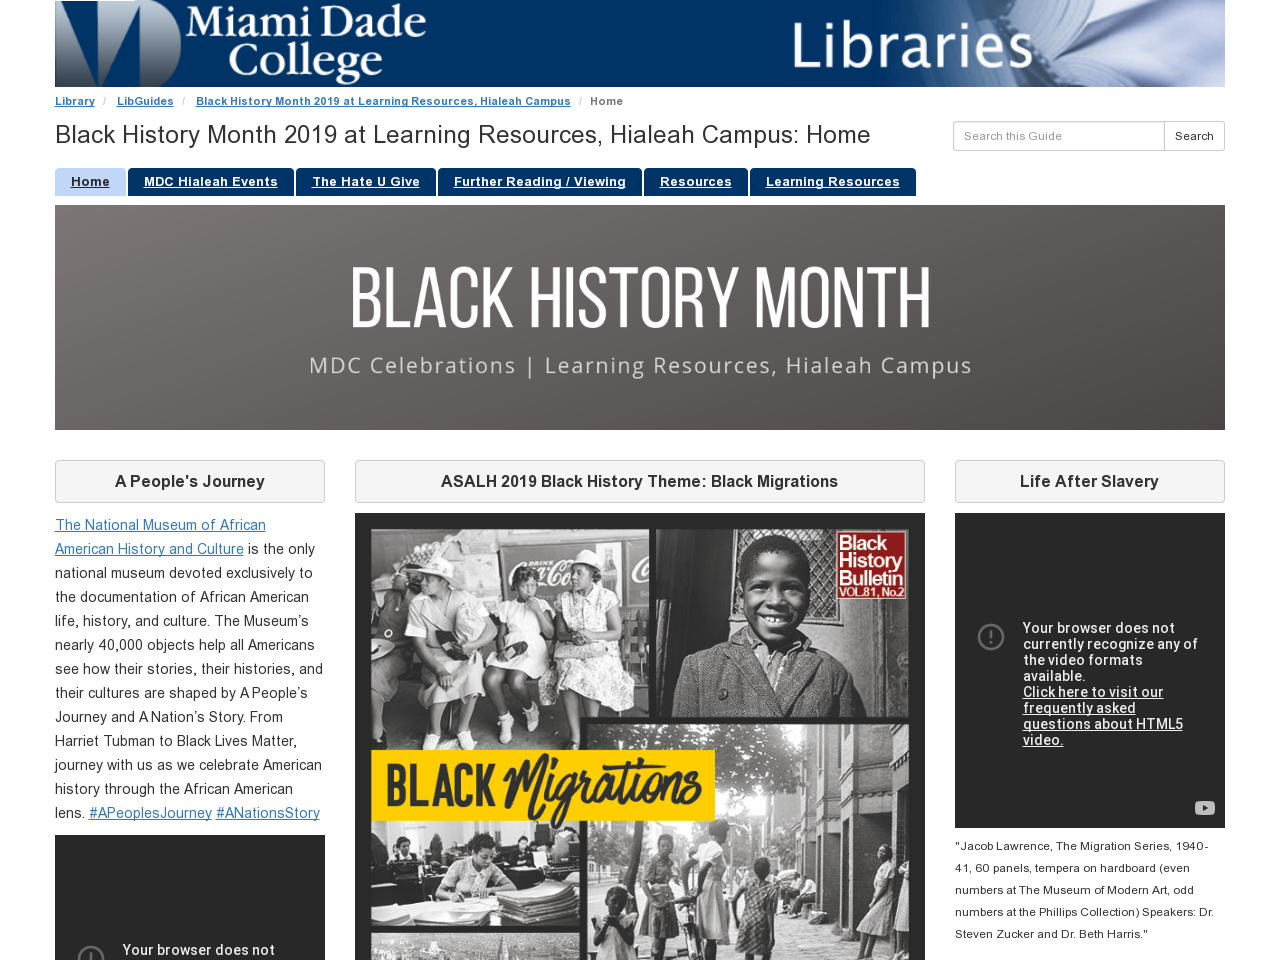 Black History Month 2019 LibGuide